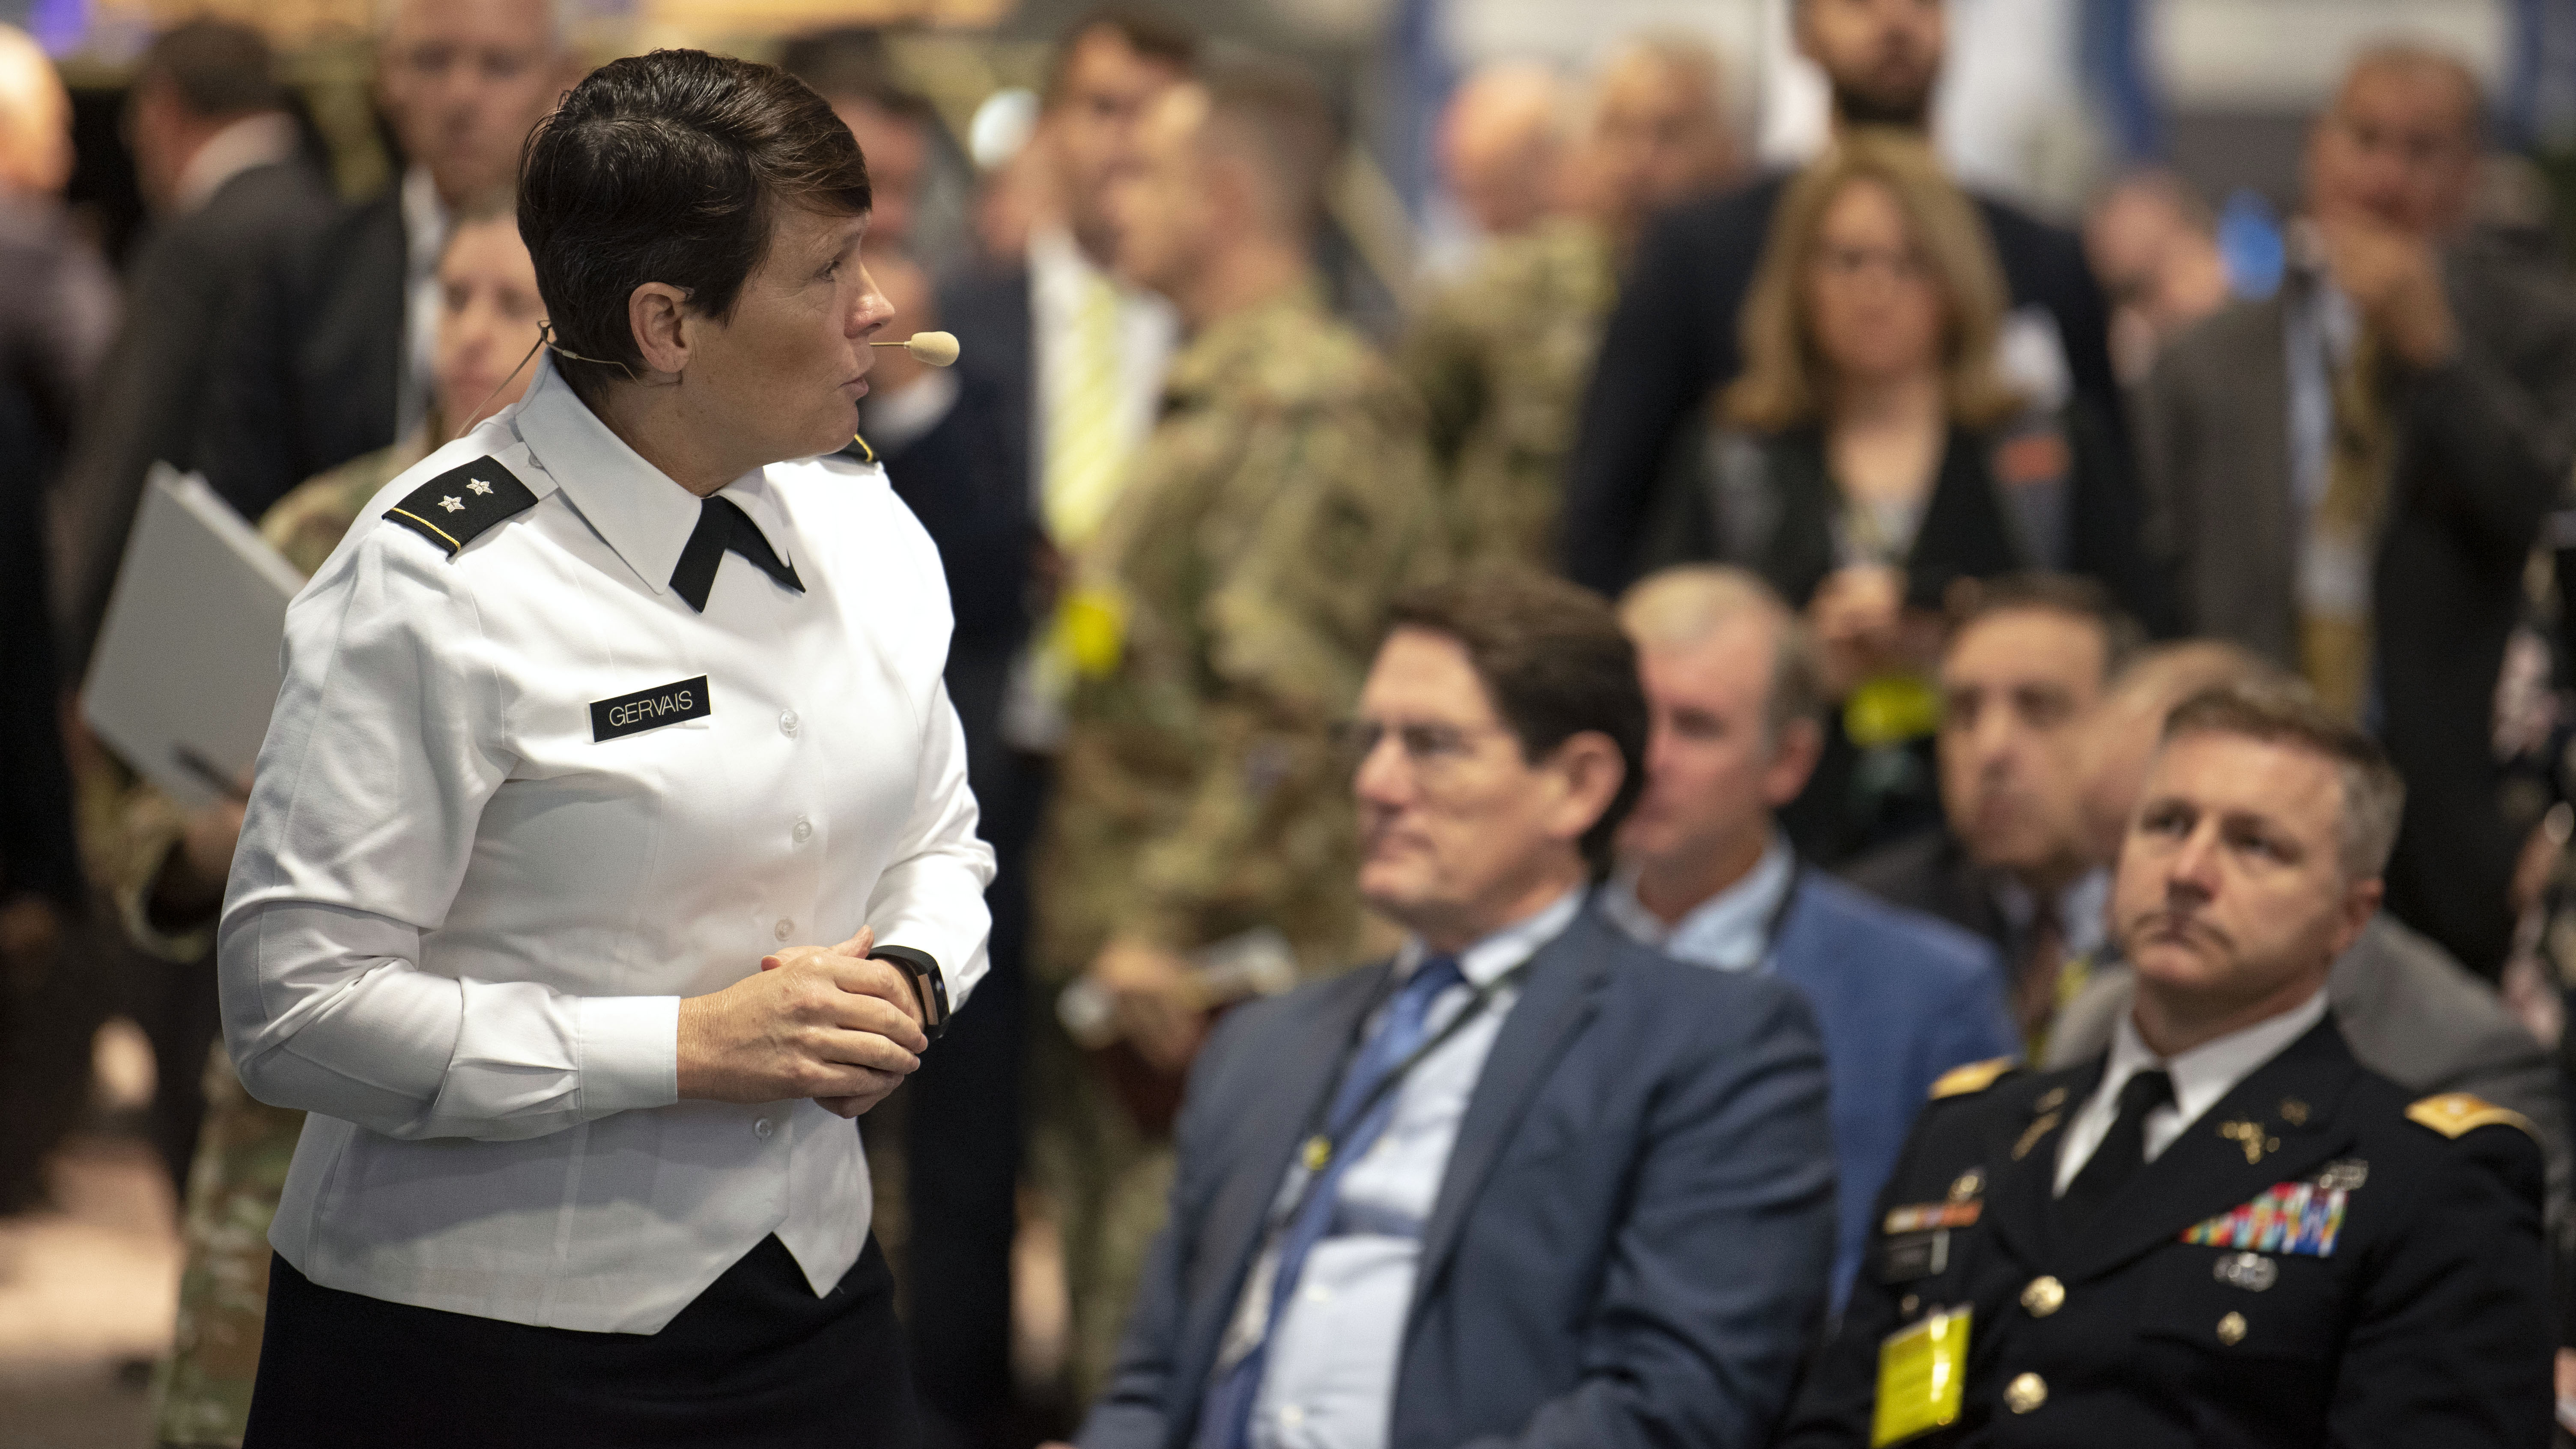 MG Maria Gervais speaks at the Revolutionizing Training Through the Synthetic Training Environment seminar at the 2019 AUSA Annual Meeting and Exposition at the Washington Convention Center on Oct. 15, 2019.